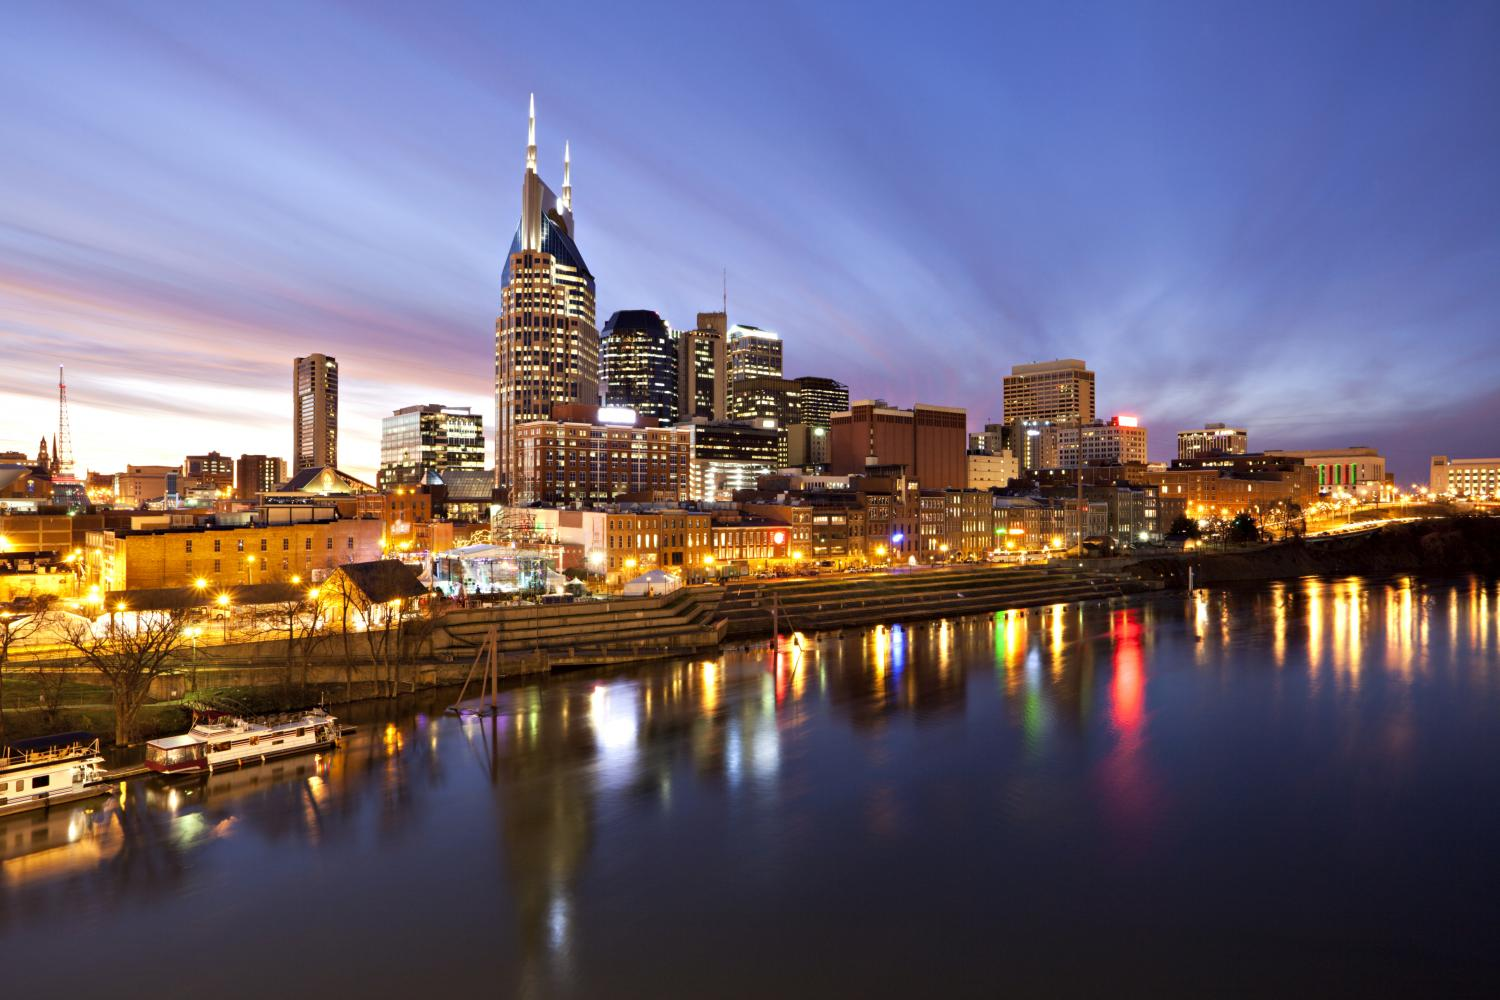 Relocating to Nashville? Here are 7 says to fit in with your new neighbors, from hot chicken to honky tonks